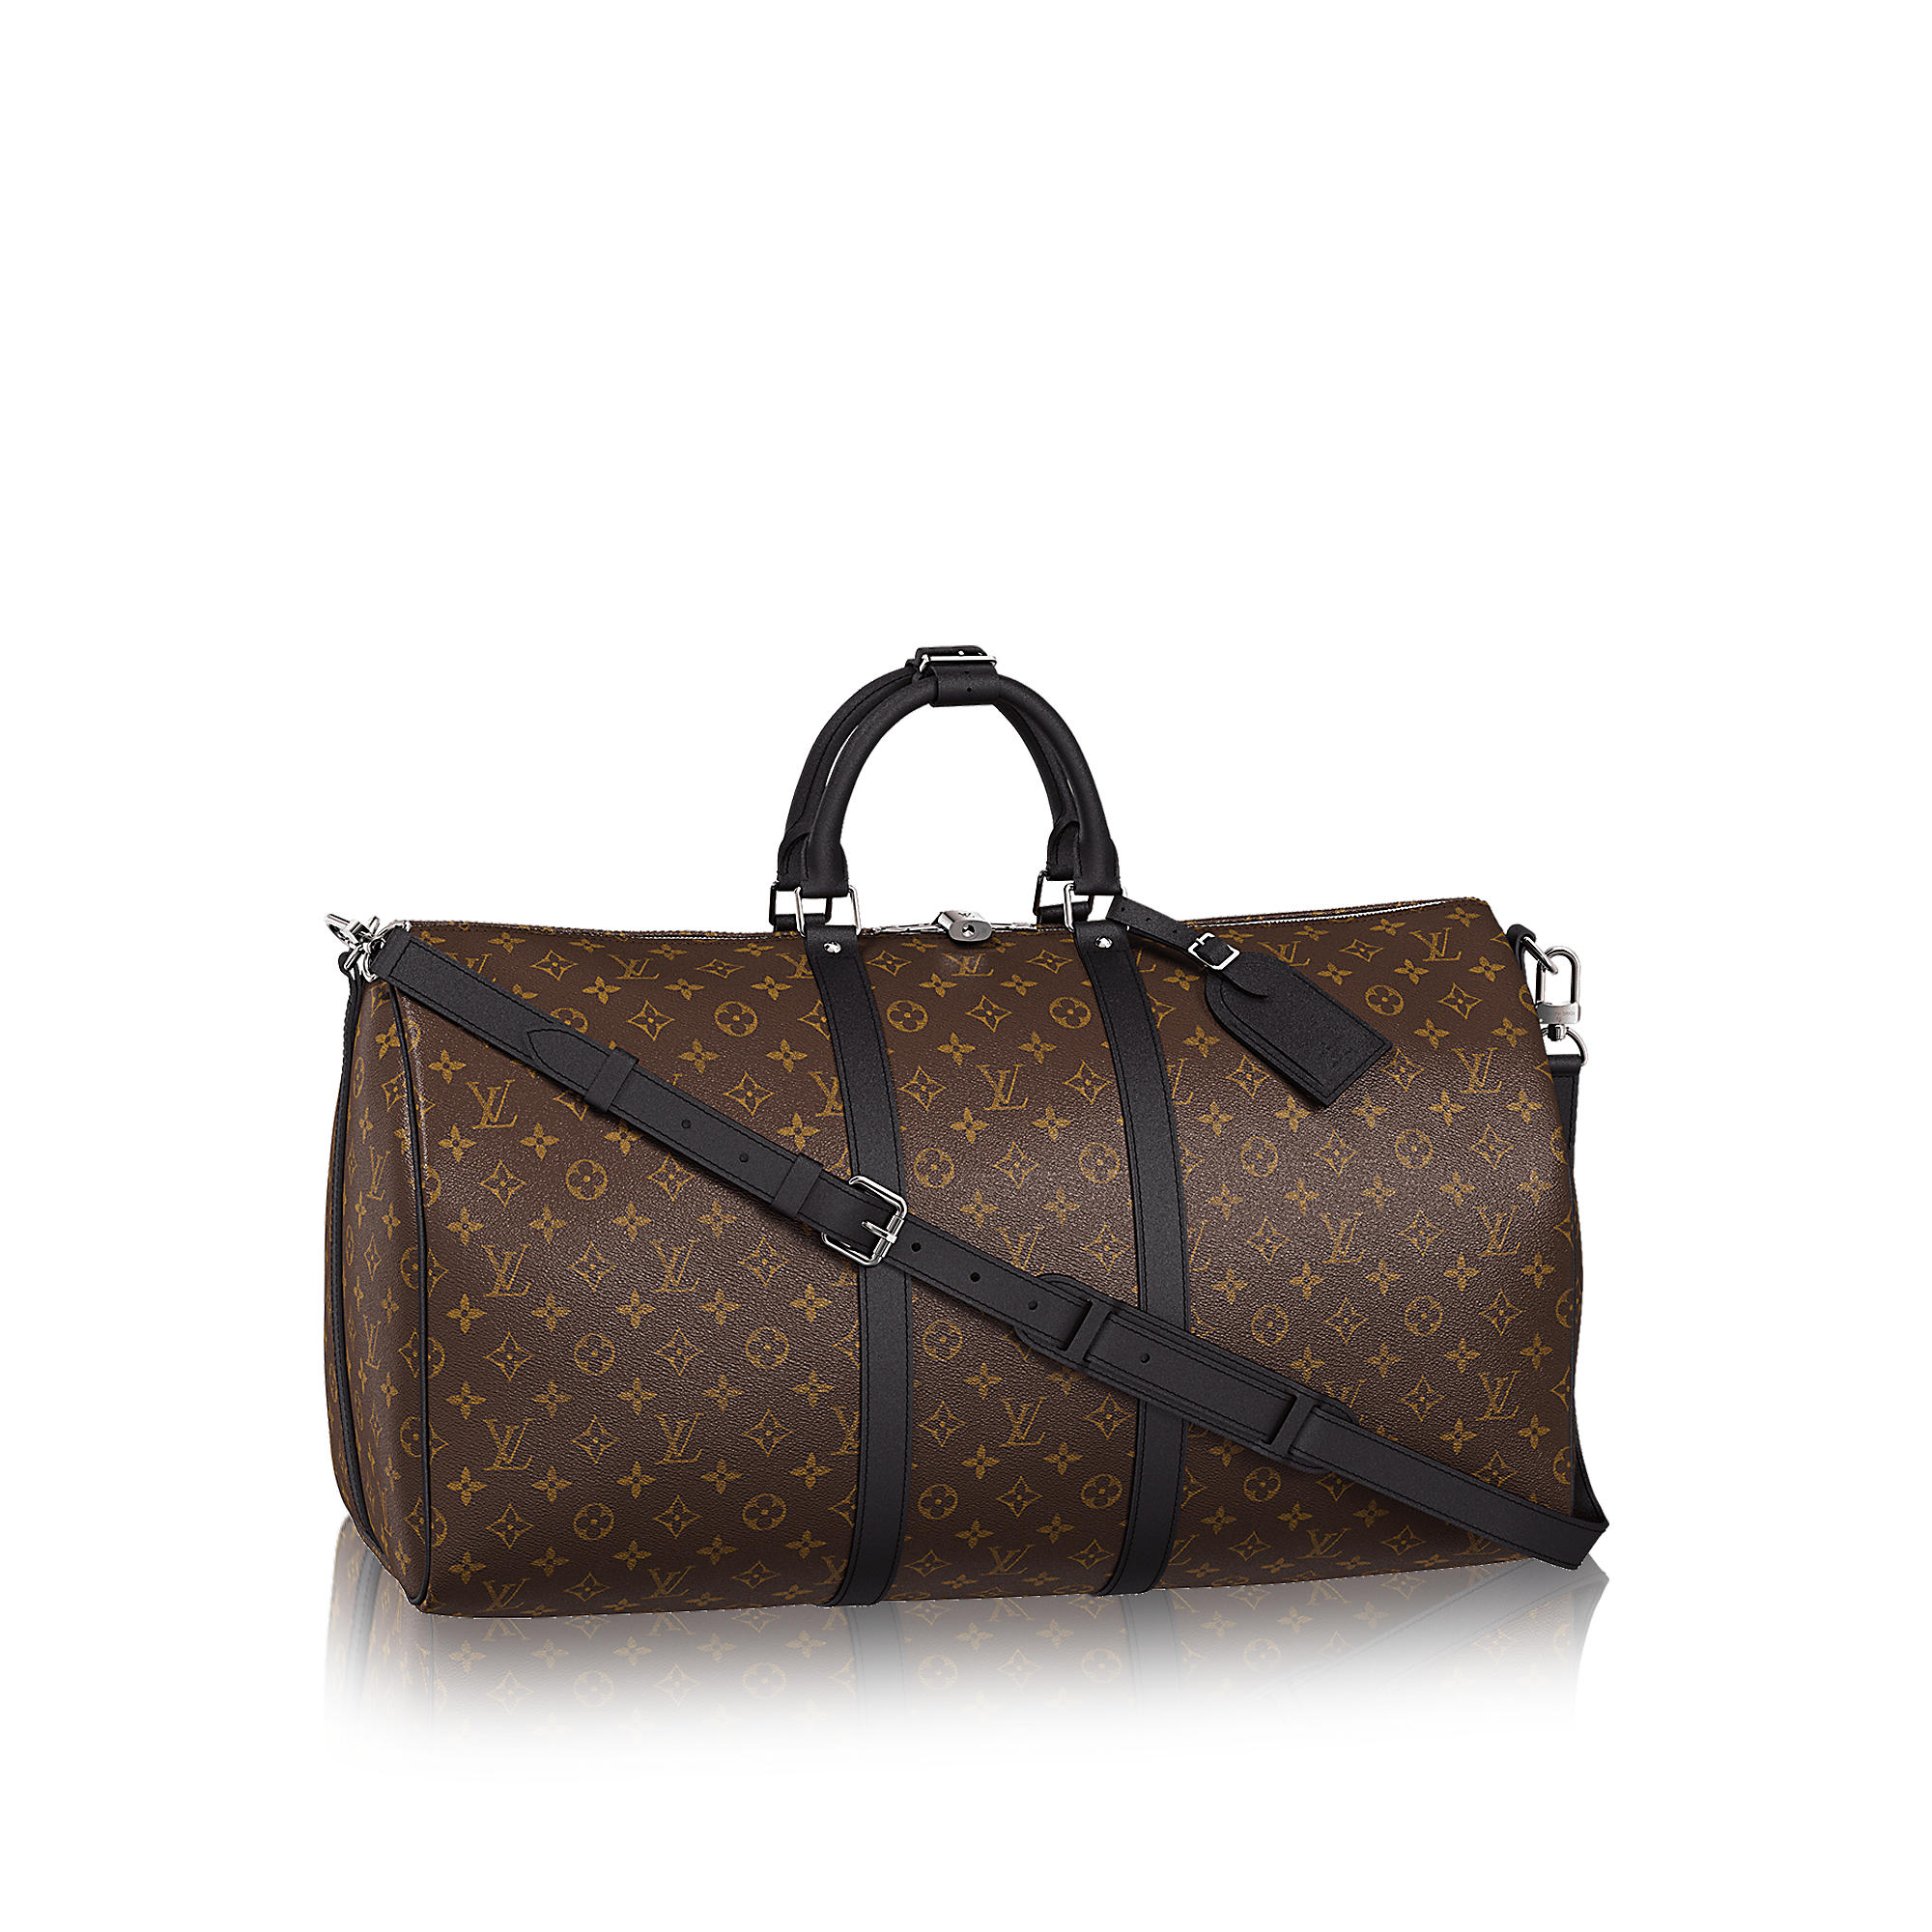 Louis Vuitton Uomo Keepall Bandoulière 55